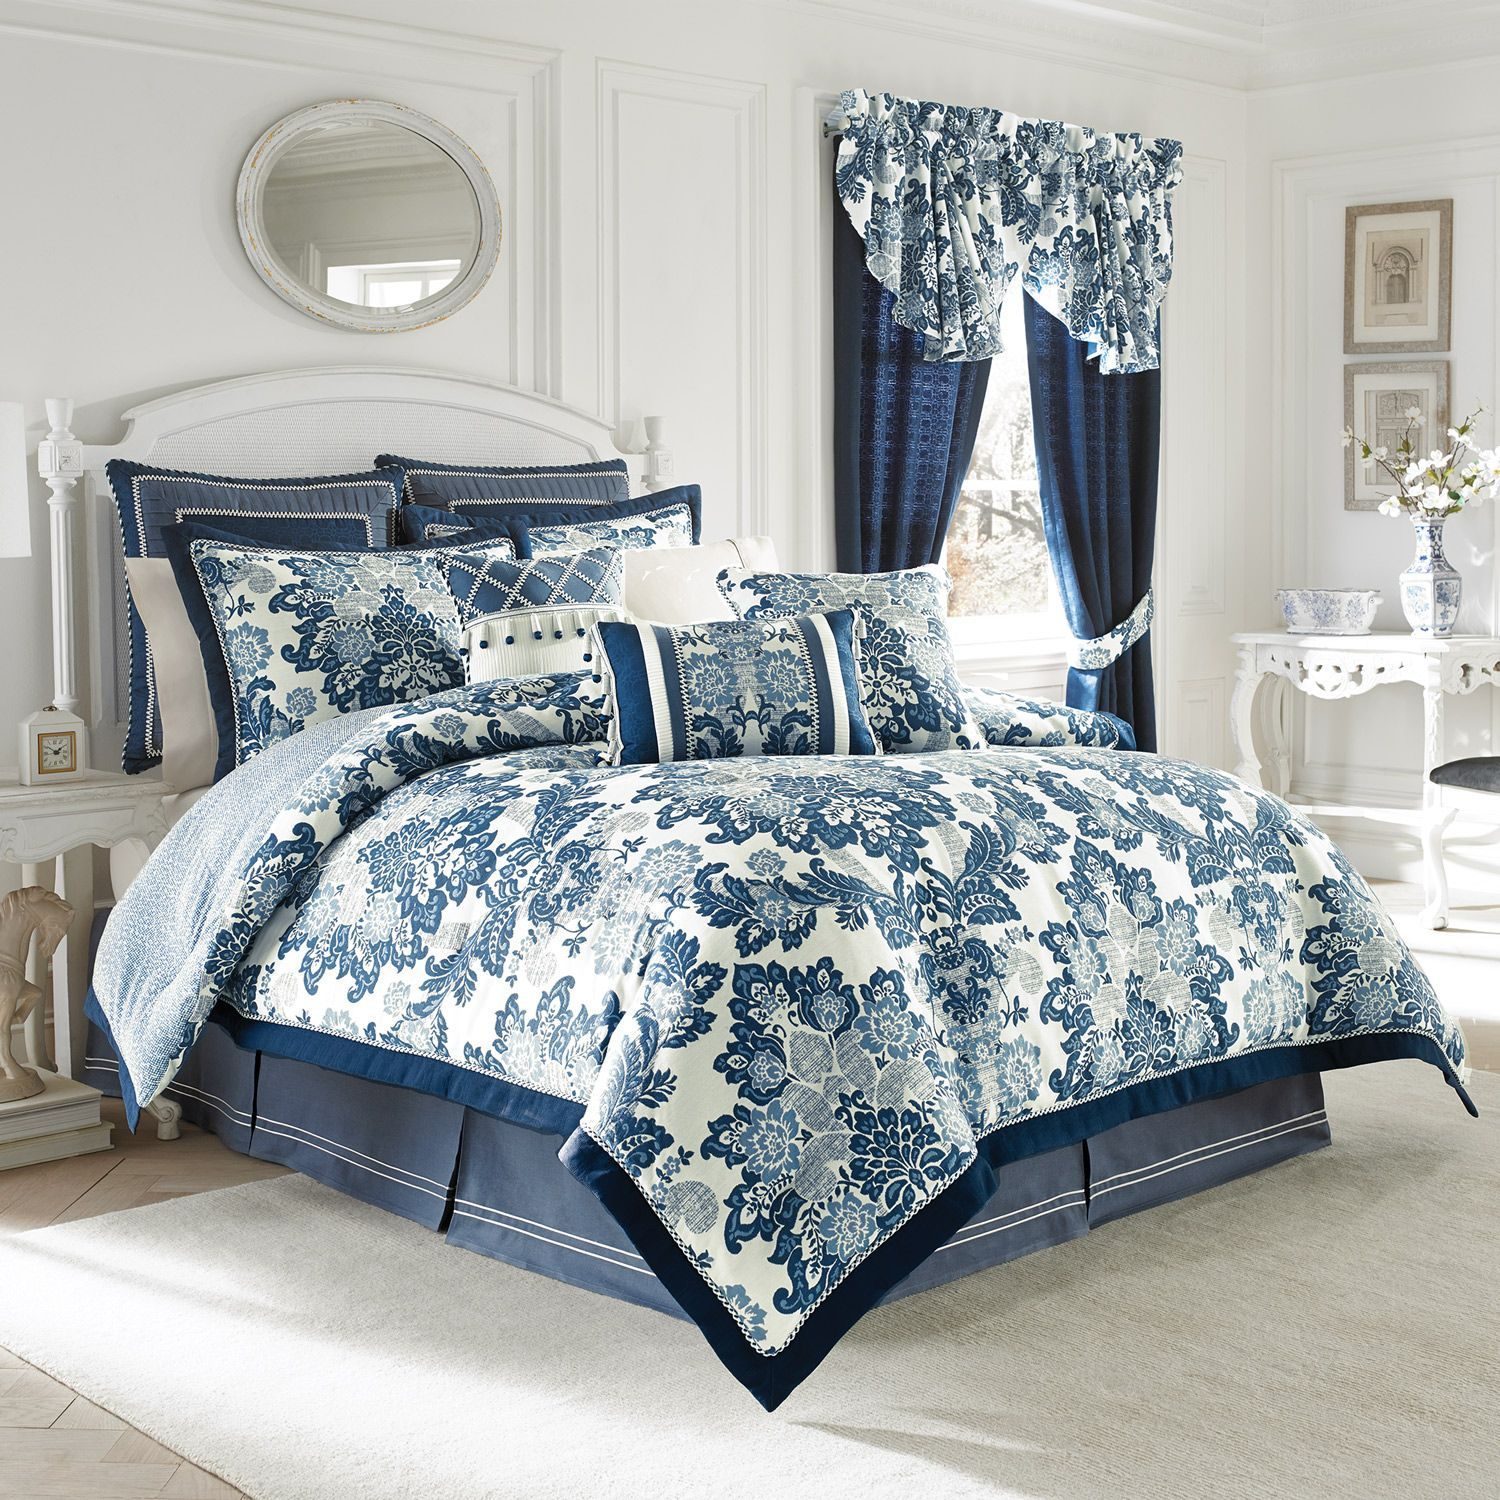 Bedding jardin collection bedding collections bed amp bath macy s - Luxury Bedding Collections